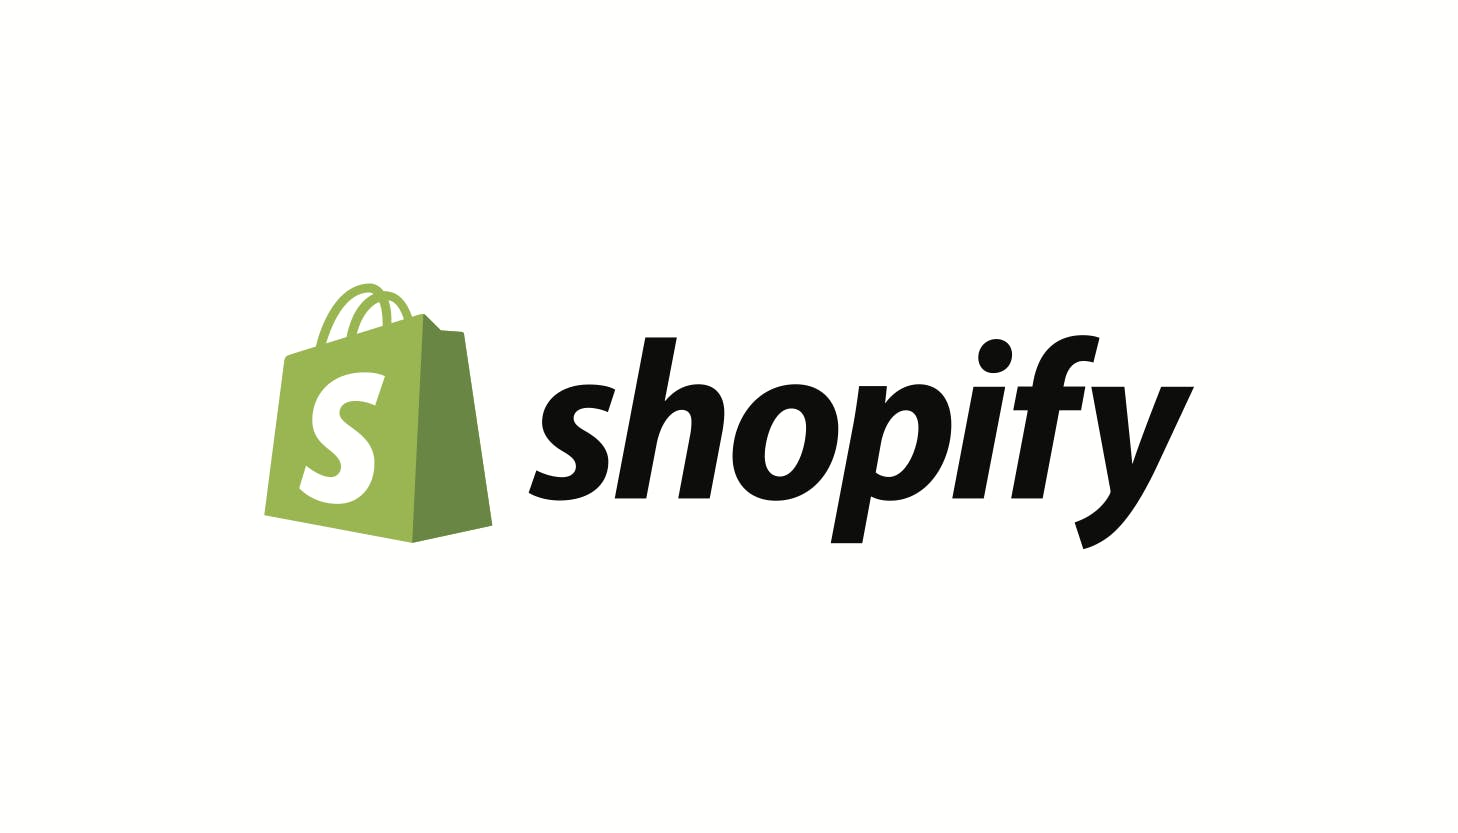 An Evening With Shopify - Offaly